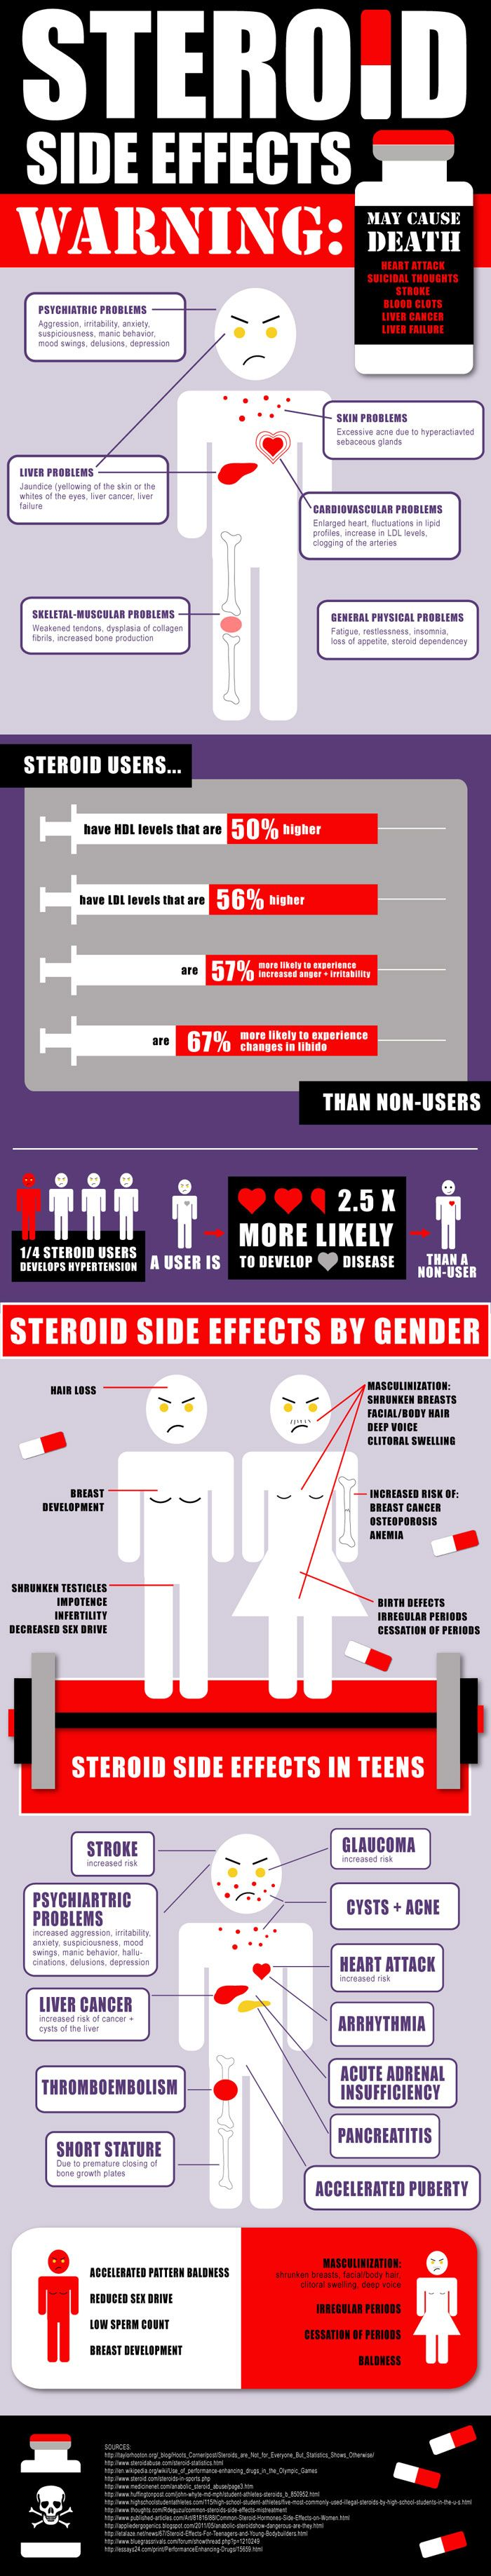 Prednisone 25 mg.doc - Effects Of Steroids All Time Lows In People What Douche Bags Prednisone